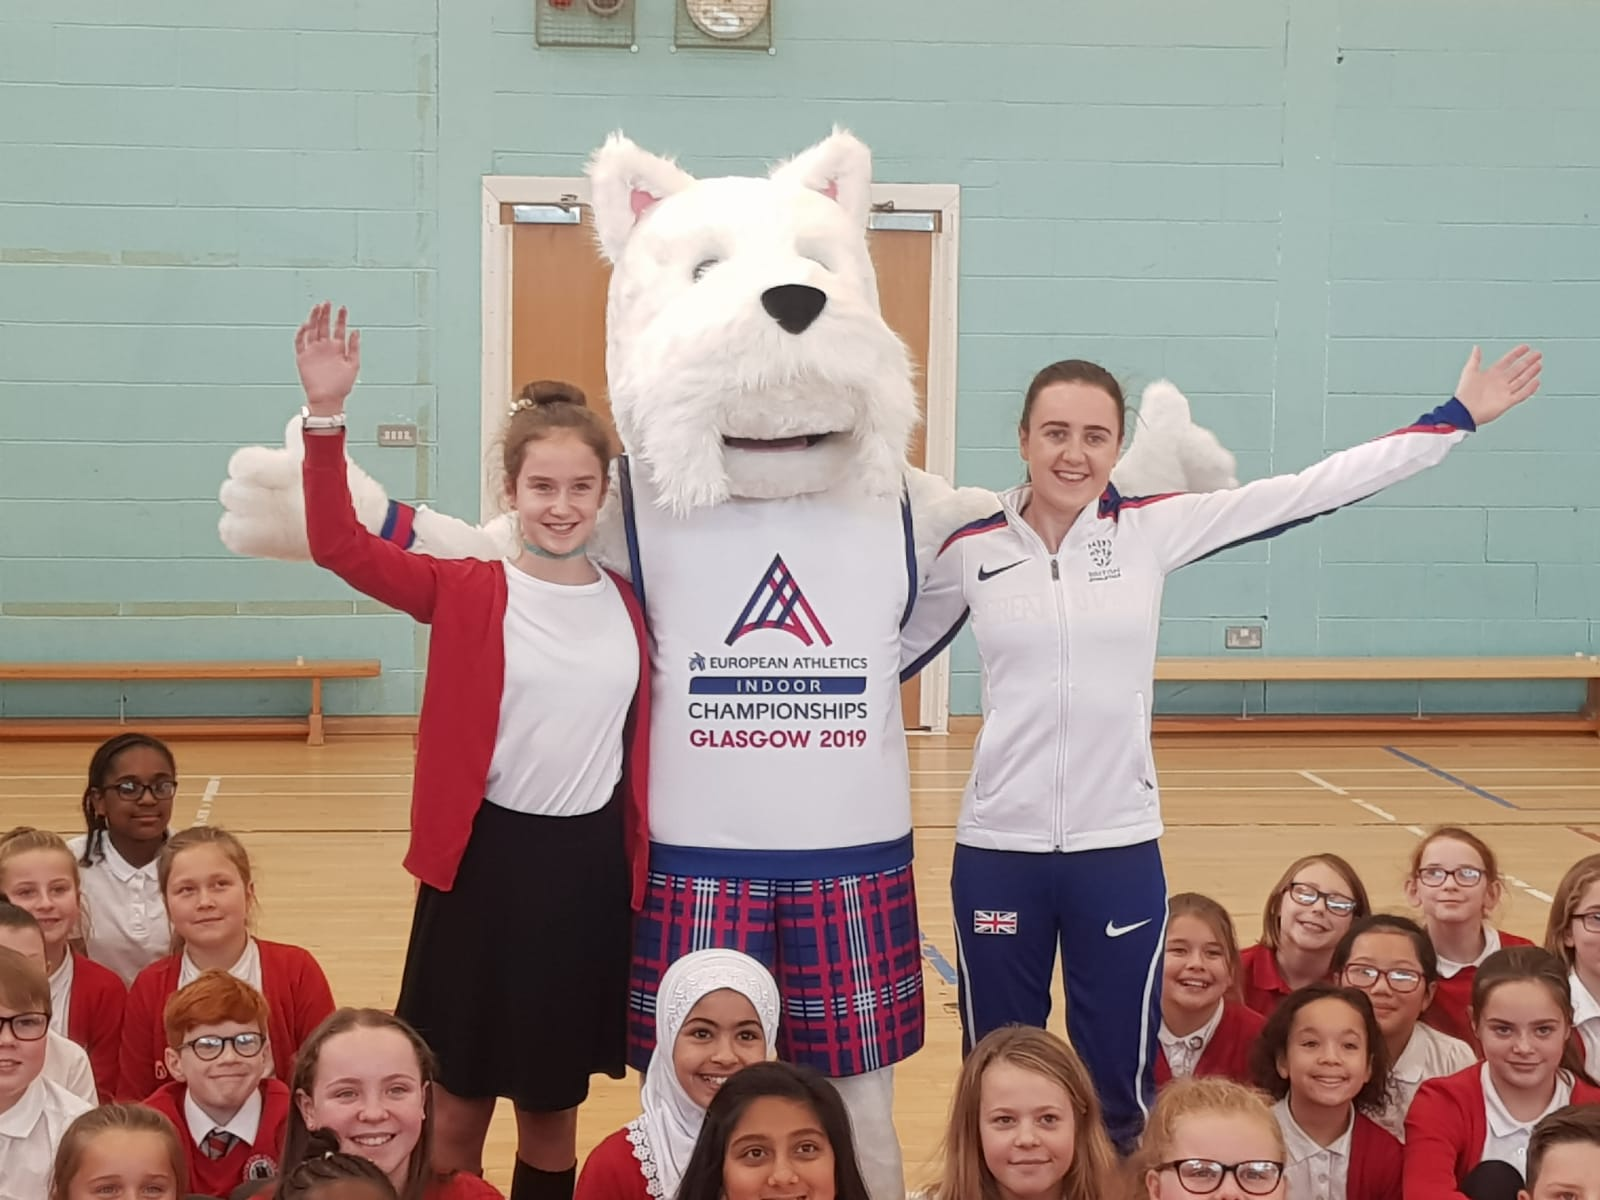 'Scottee' the Scottie dog revealed as official mascot for Glasgow 2019